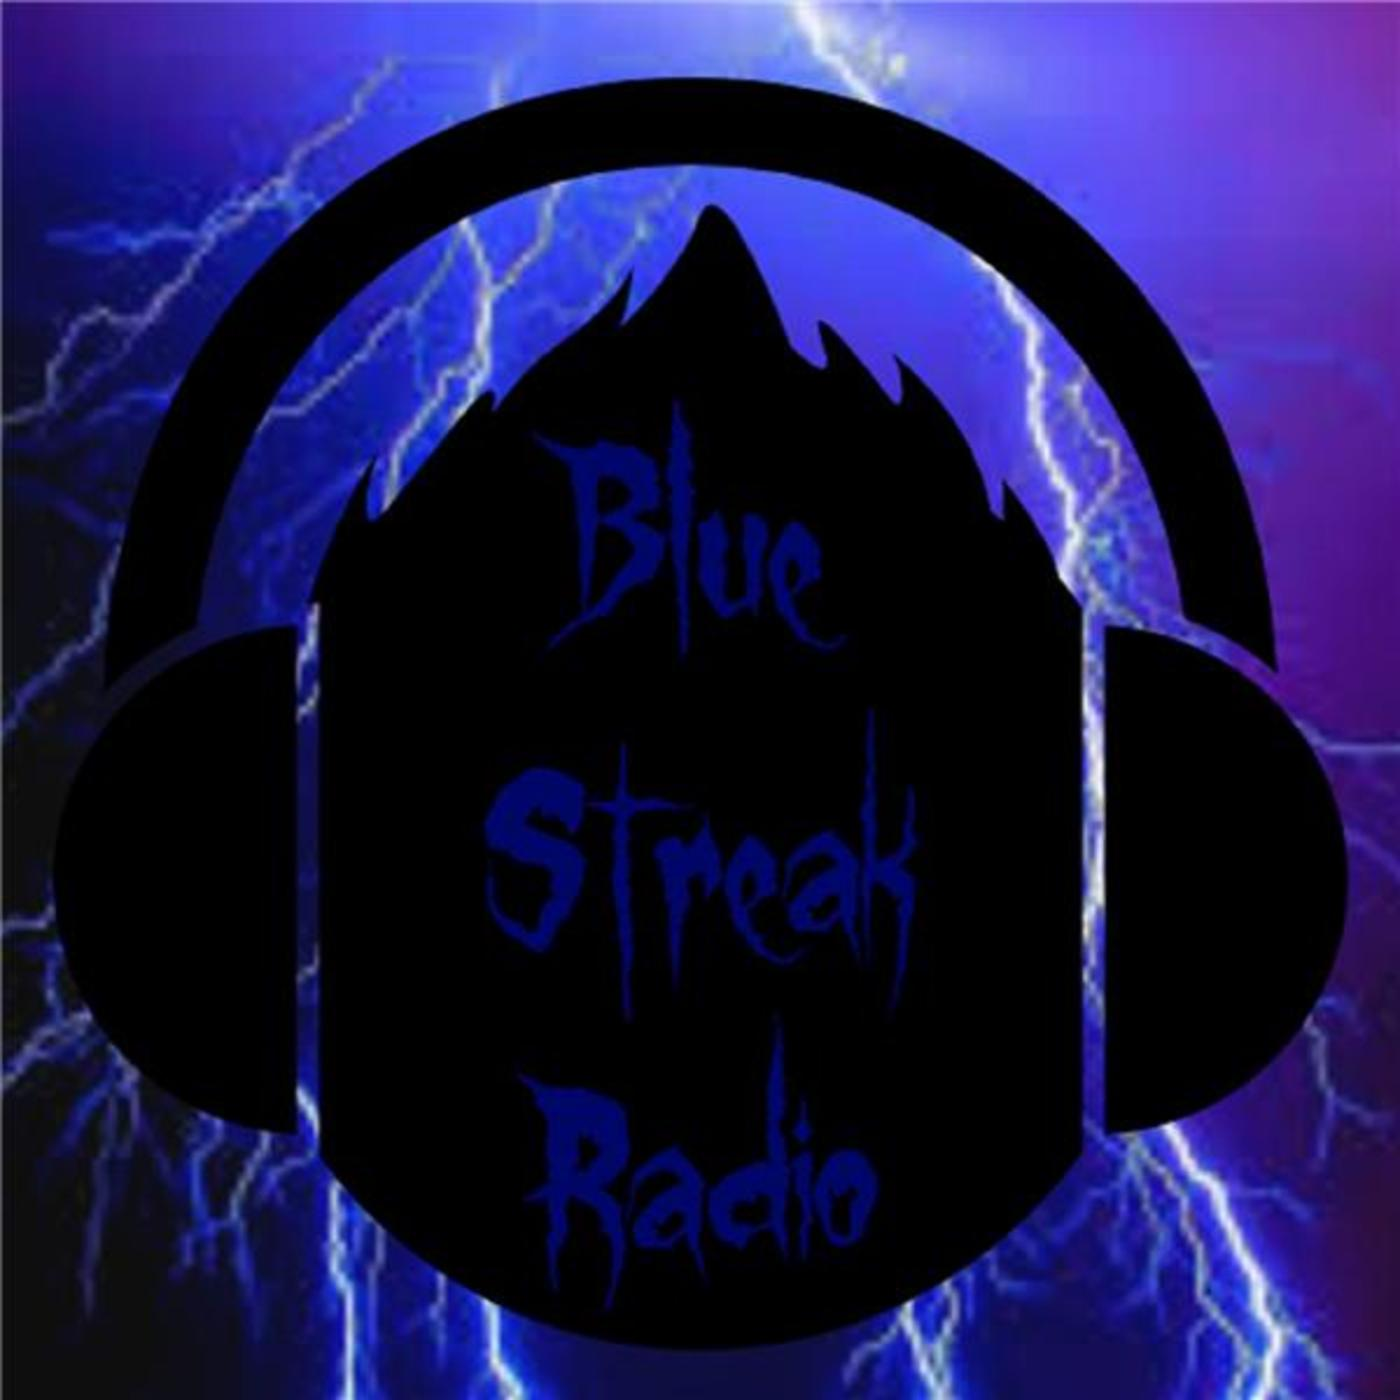 Blue Streak Radio